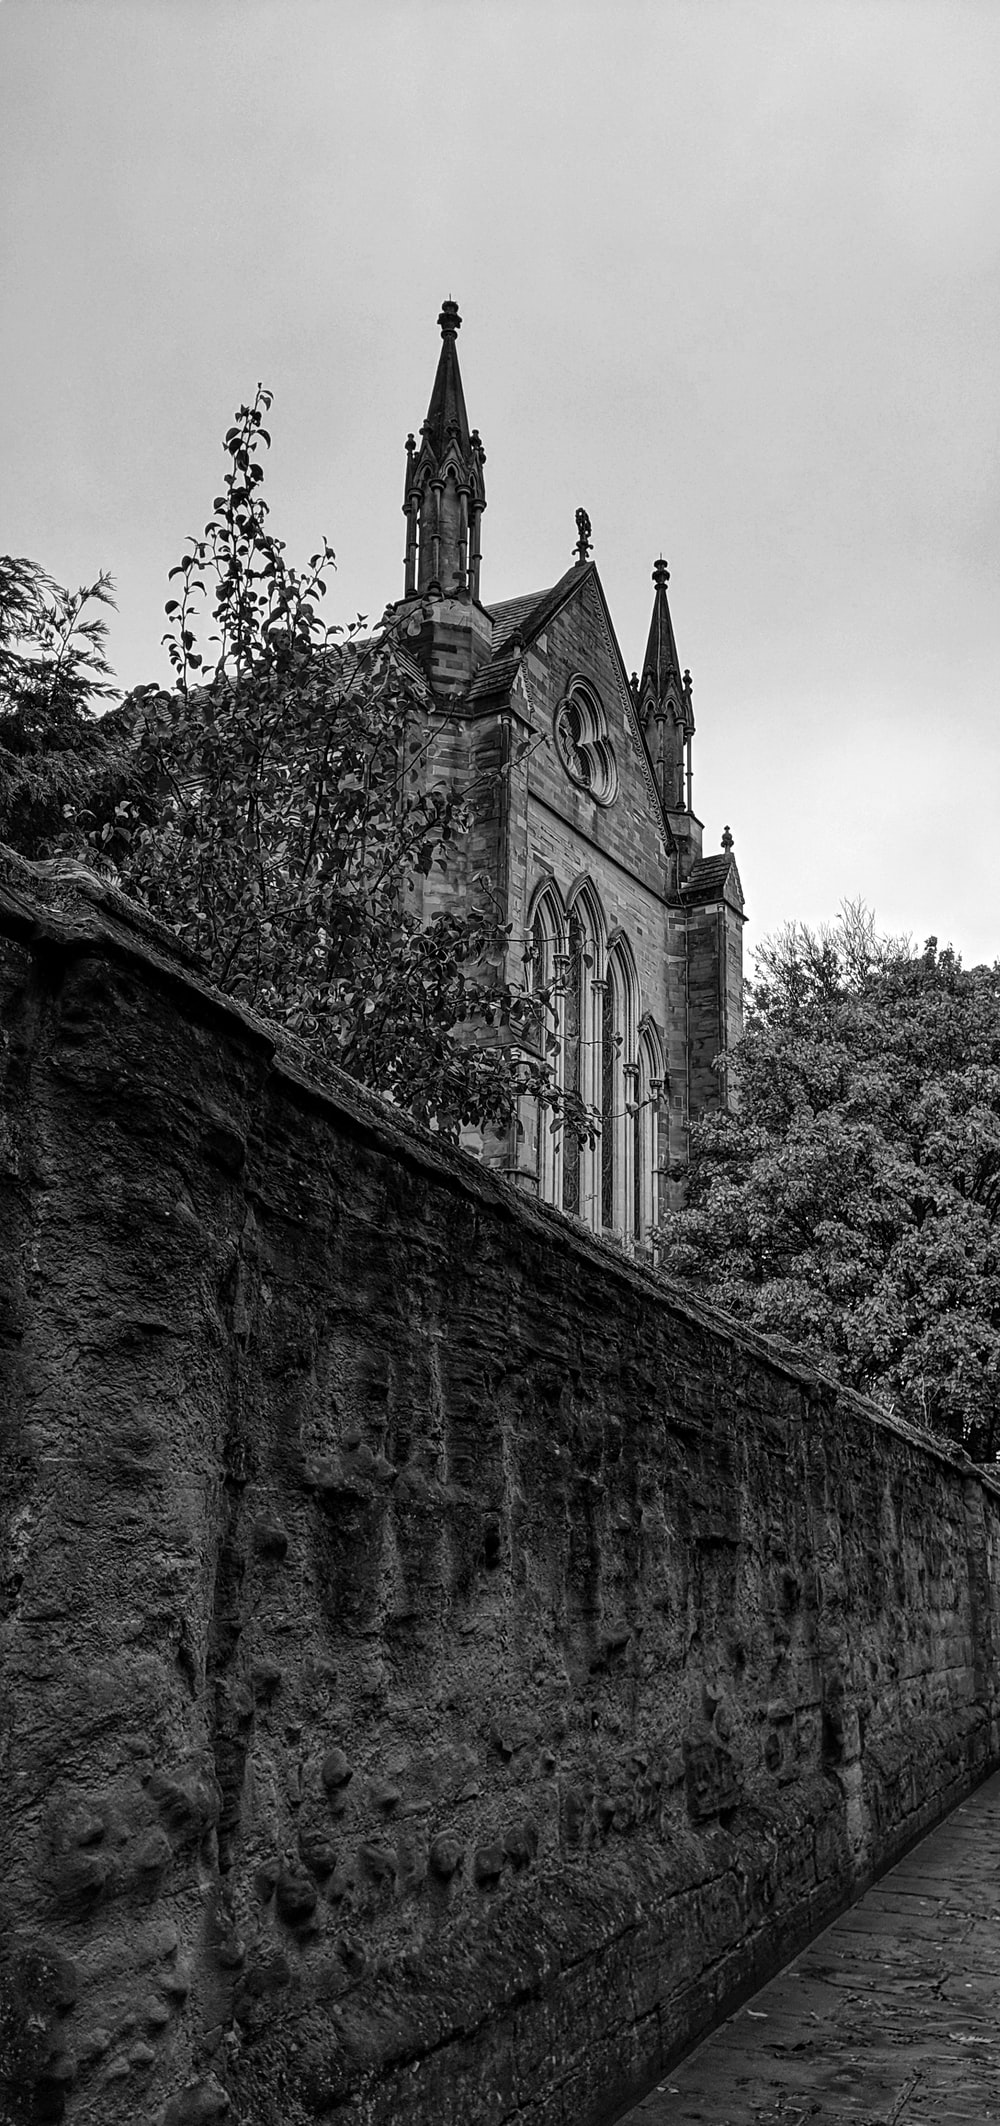 grayscale photography of a cathedral building